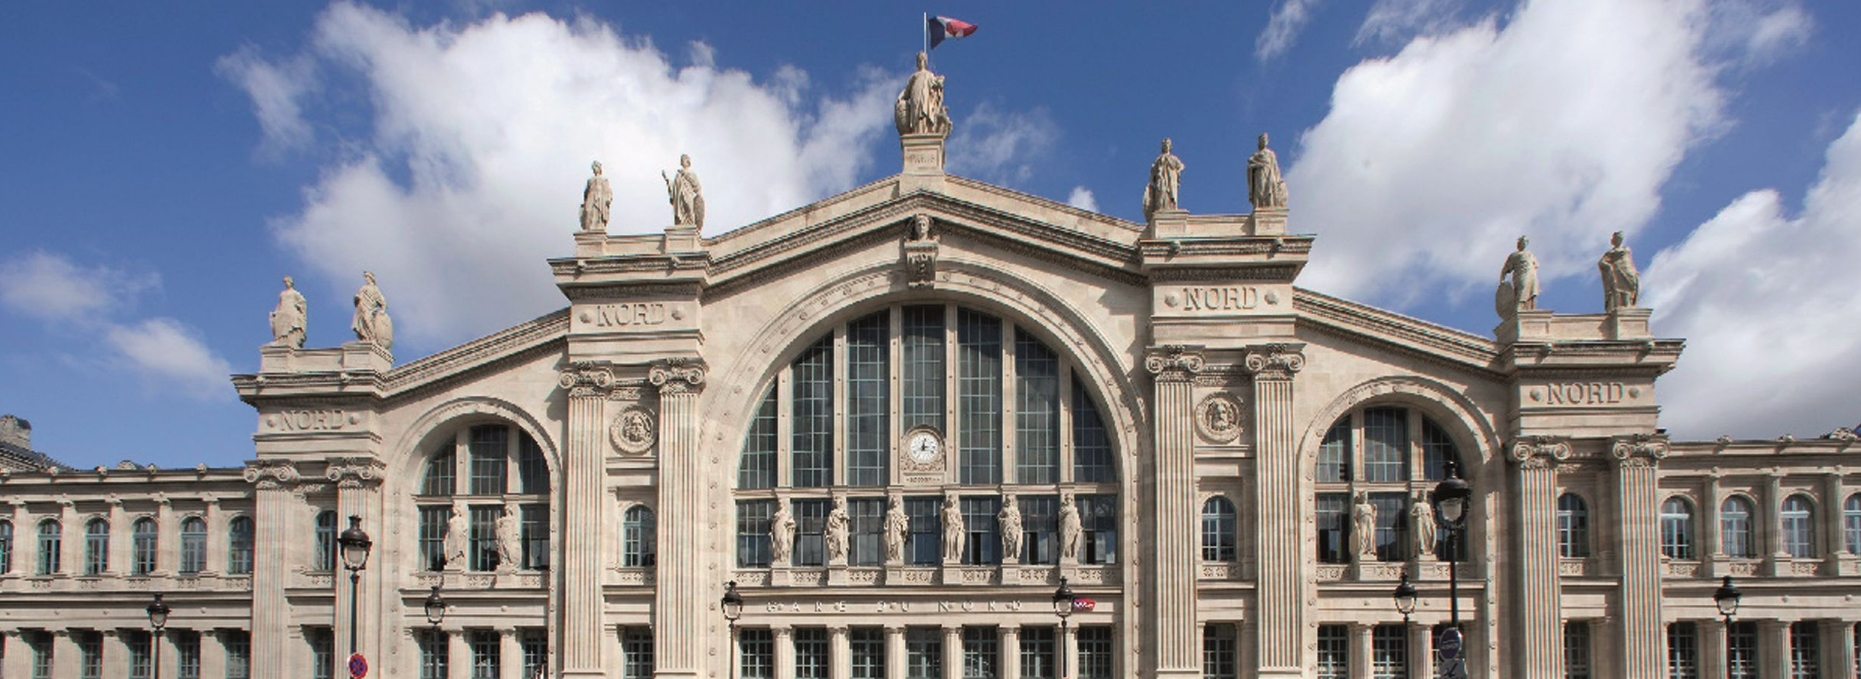 gare nord paris